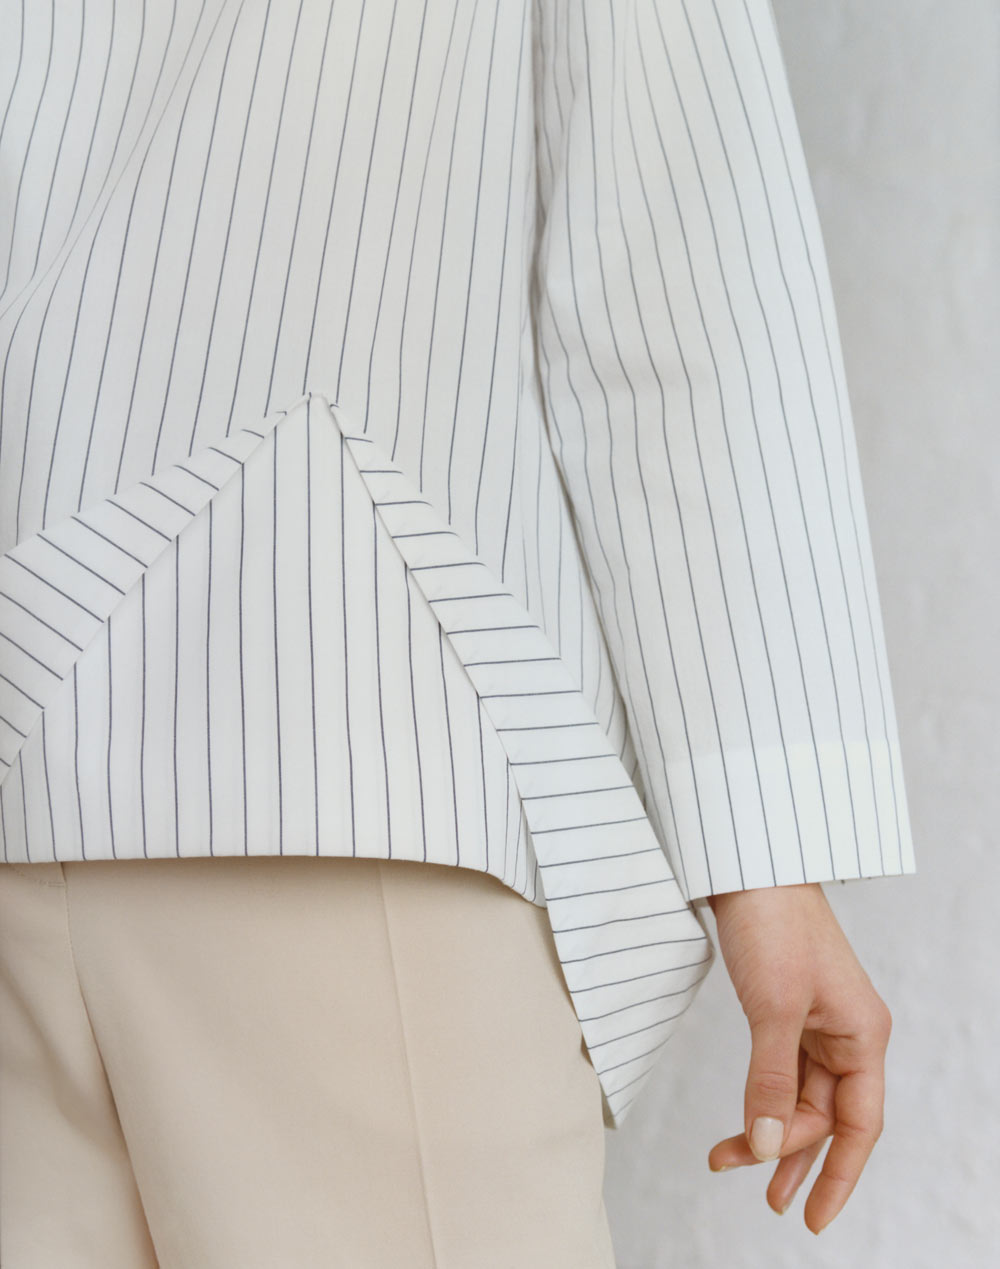 cos-ss18-drapery-folding-detail.jpg